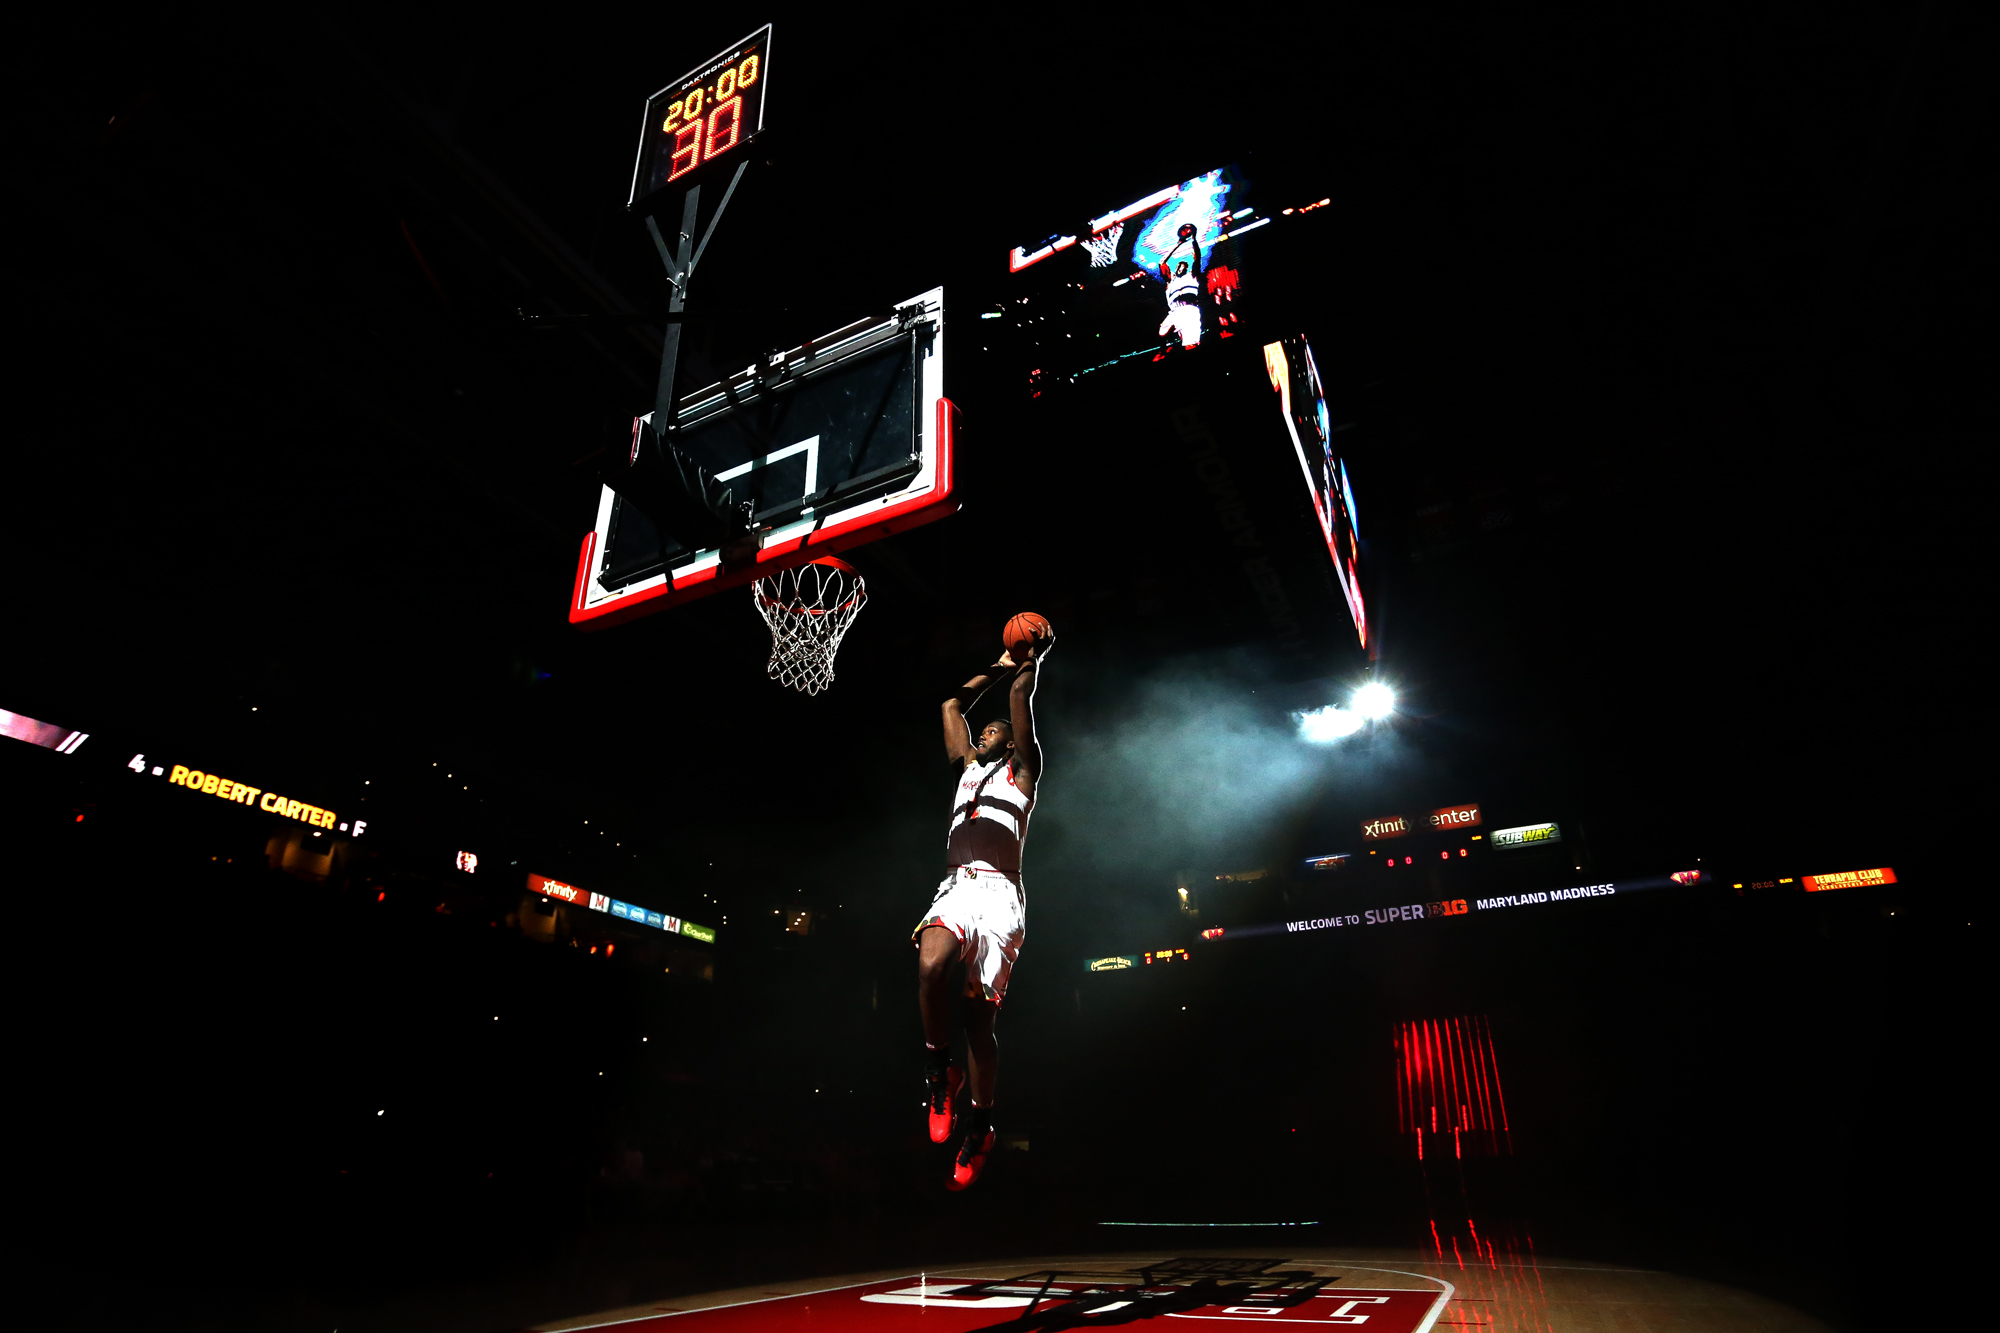 Robert Carter of University of Maryland dunks after being introduced during Maryland Madness at Xfinity Center in College Park on Friday, Oct. 17, 2014.